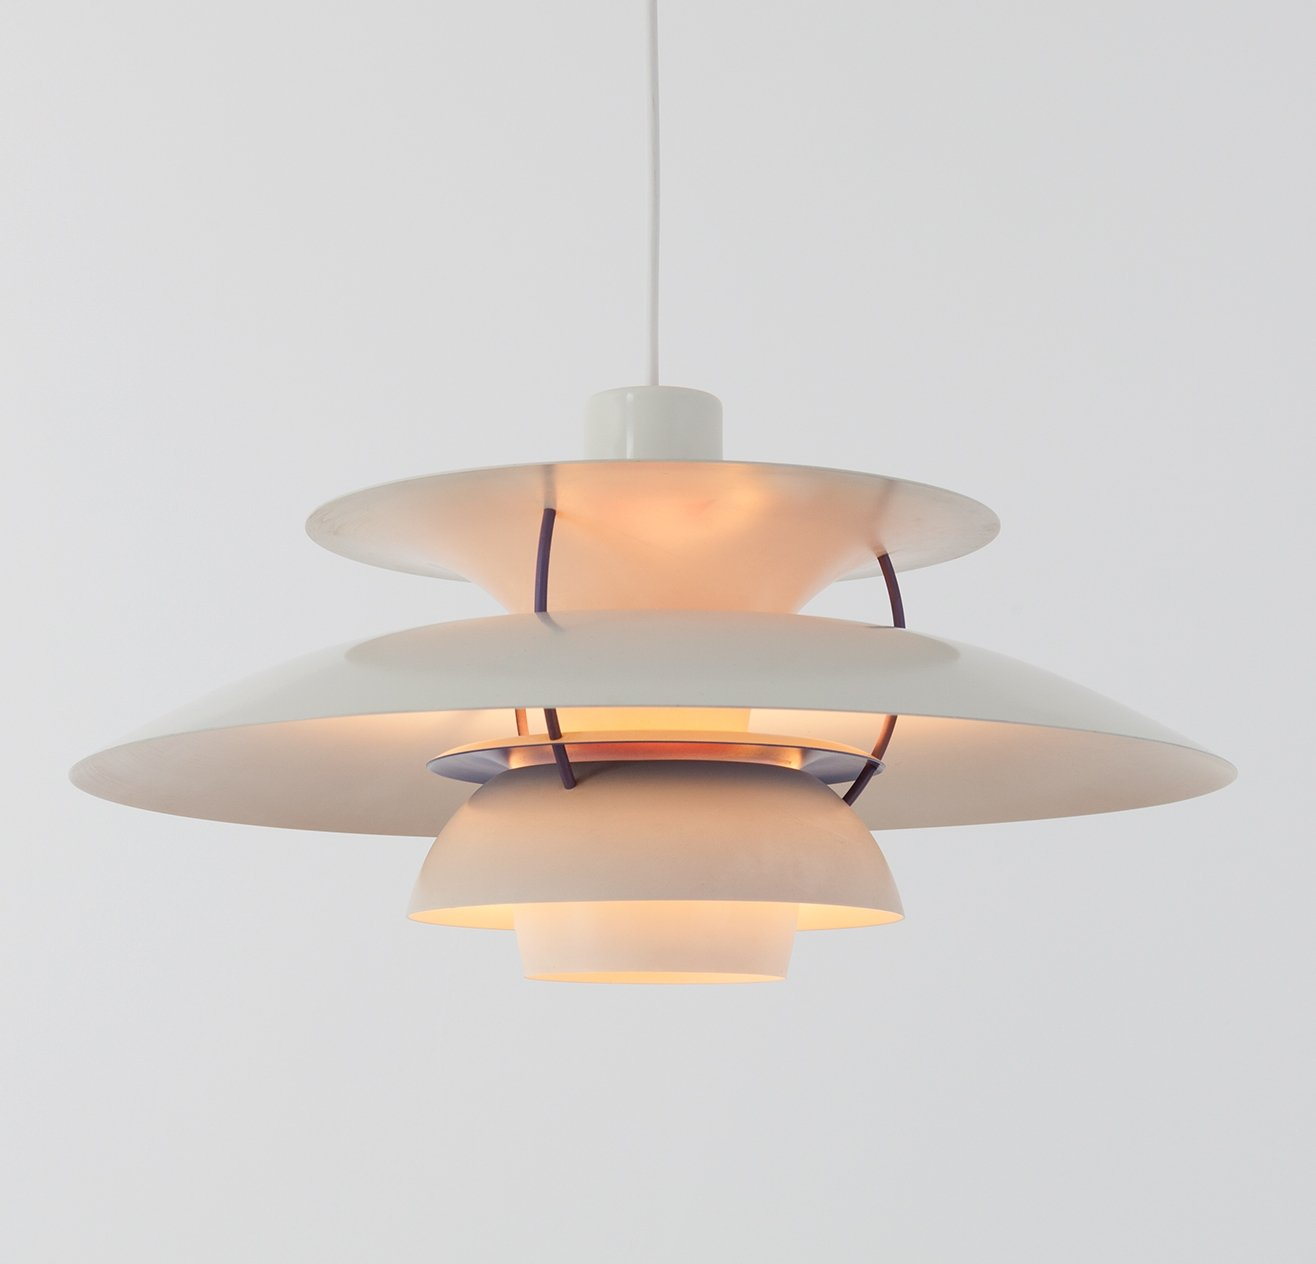 Hanging Lamp Philippines: PH 5 Hanging Lamp By Poul Henningsen For Louis Poulsen